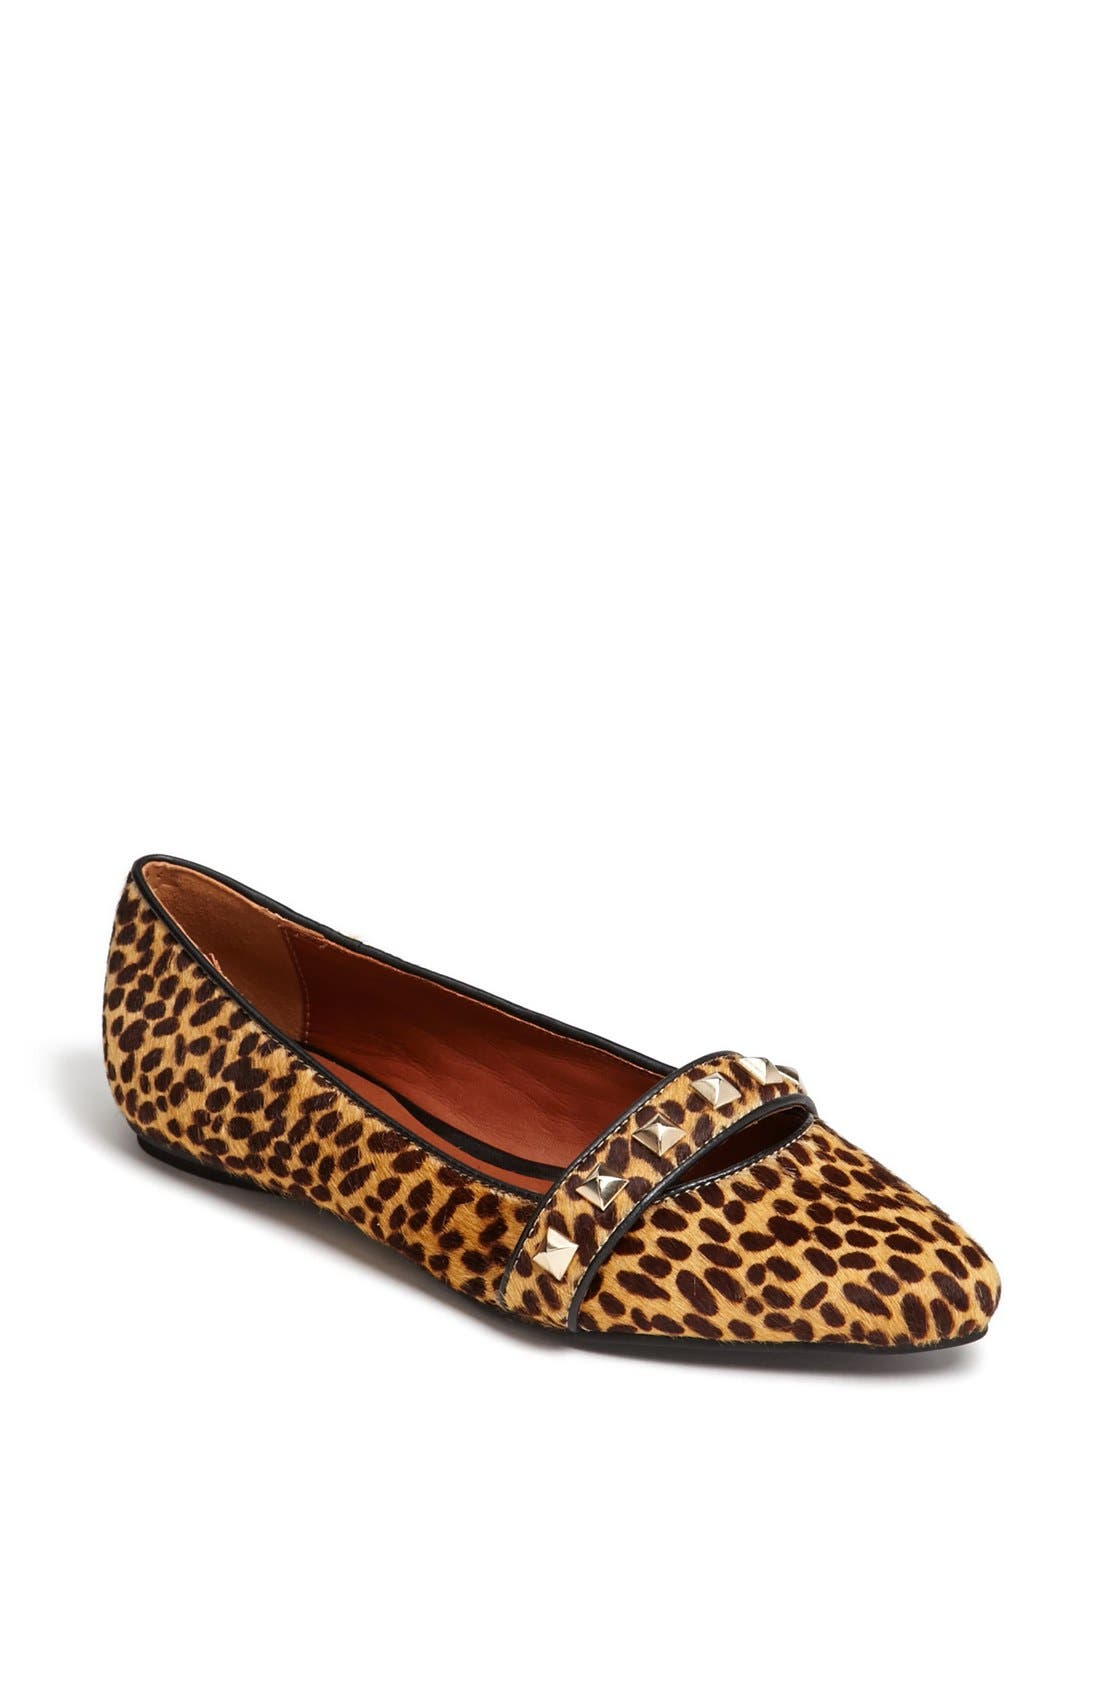 Alternate Image 1 Selected - Rebecca Minkoff 'Ira' Flat